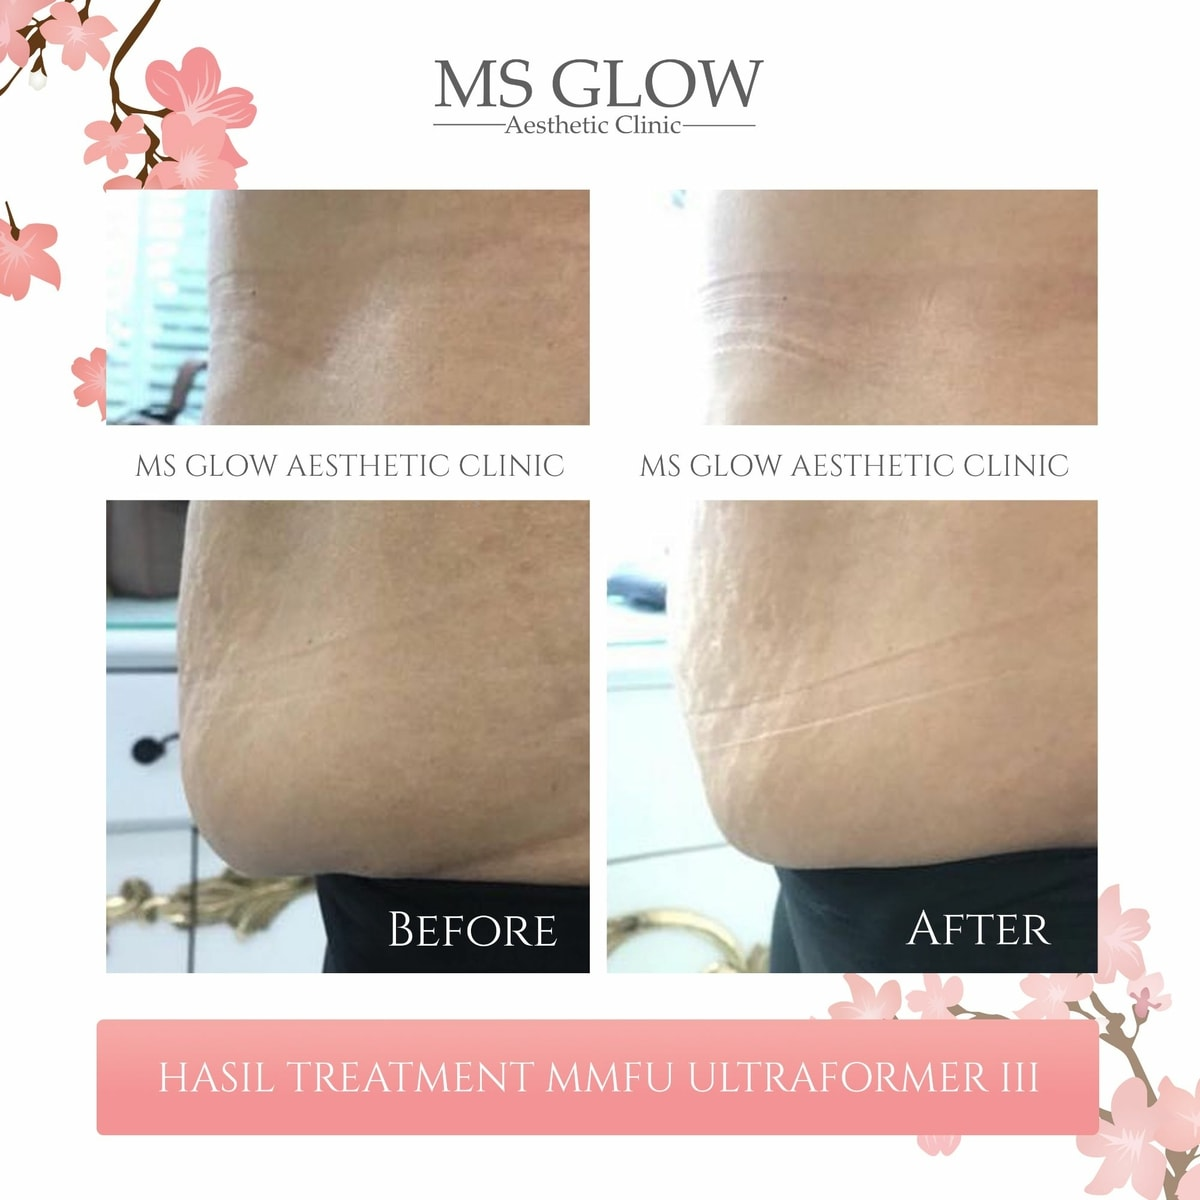 Hasil Treatment MMFU Ultraformer III Ms Glow